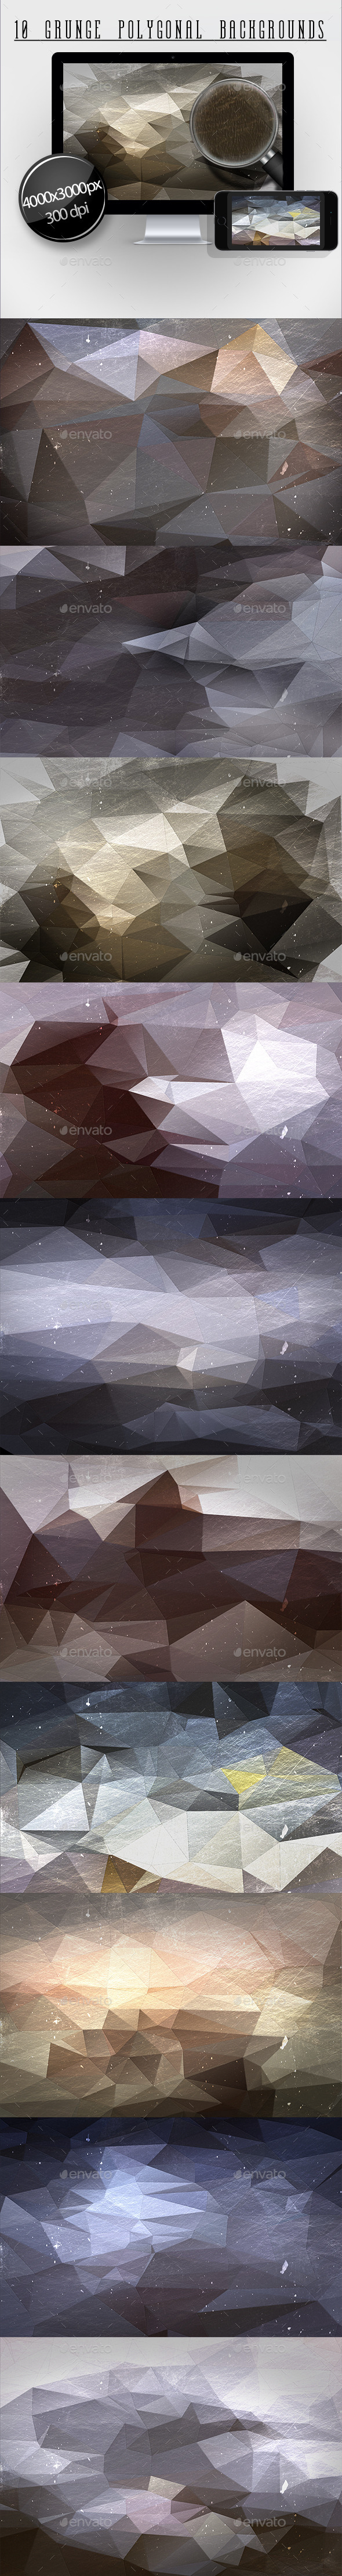 10 Grunge Polygonal Backgrounds - Abstract Backgrounds